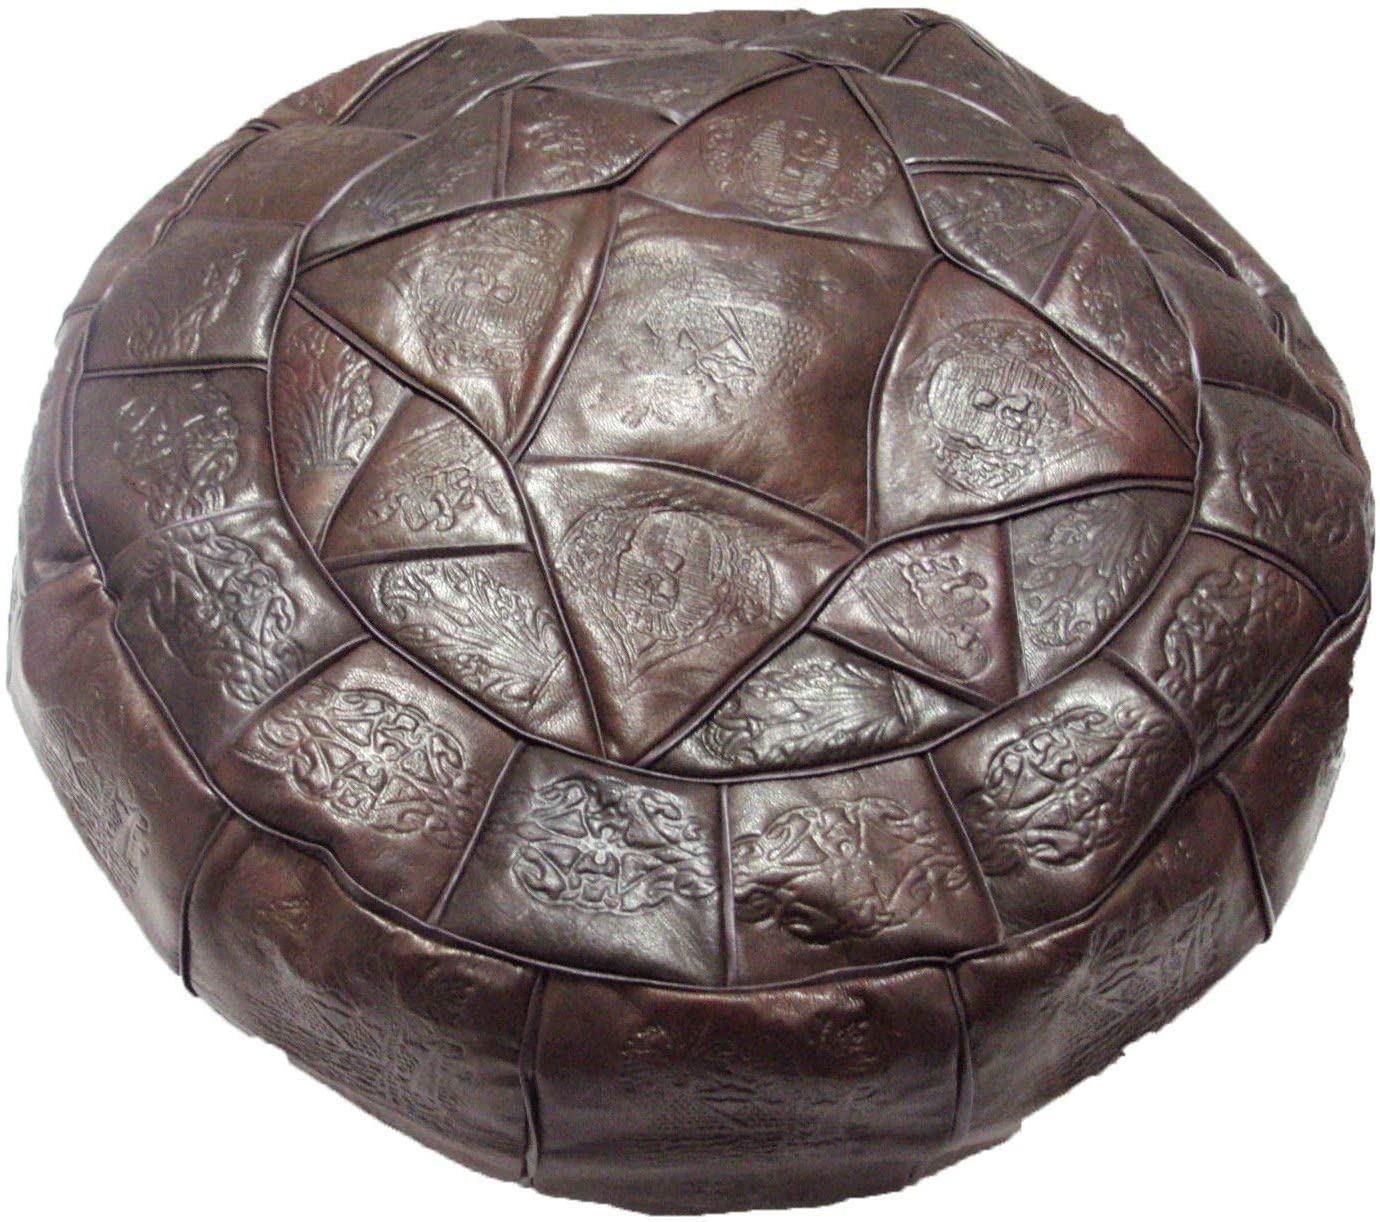 Authentic Egyptian Morocan Handmade Genuine Leather Ottoman Pouf Footstool Unstuffed XLarge Diameter 20 Height 11.3